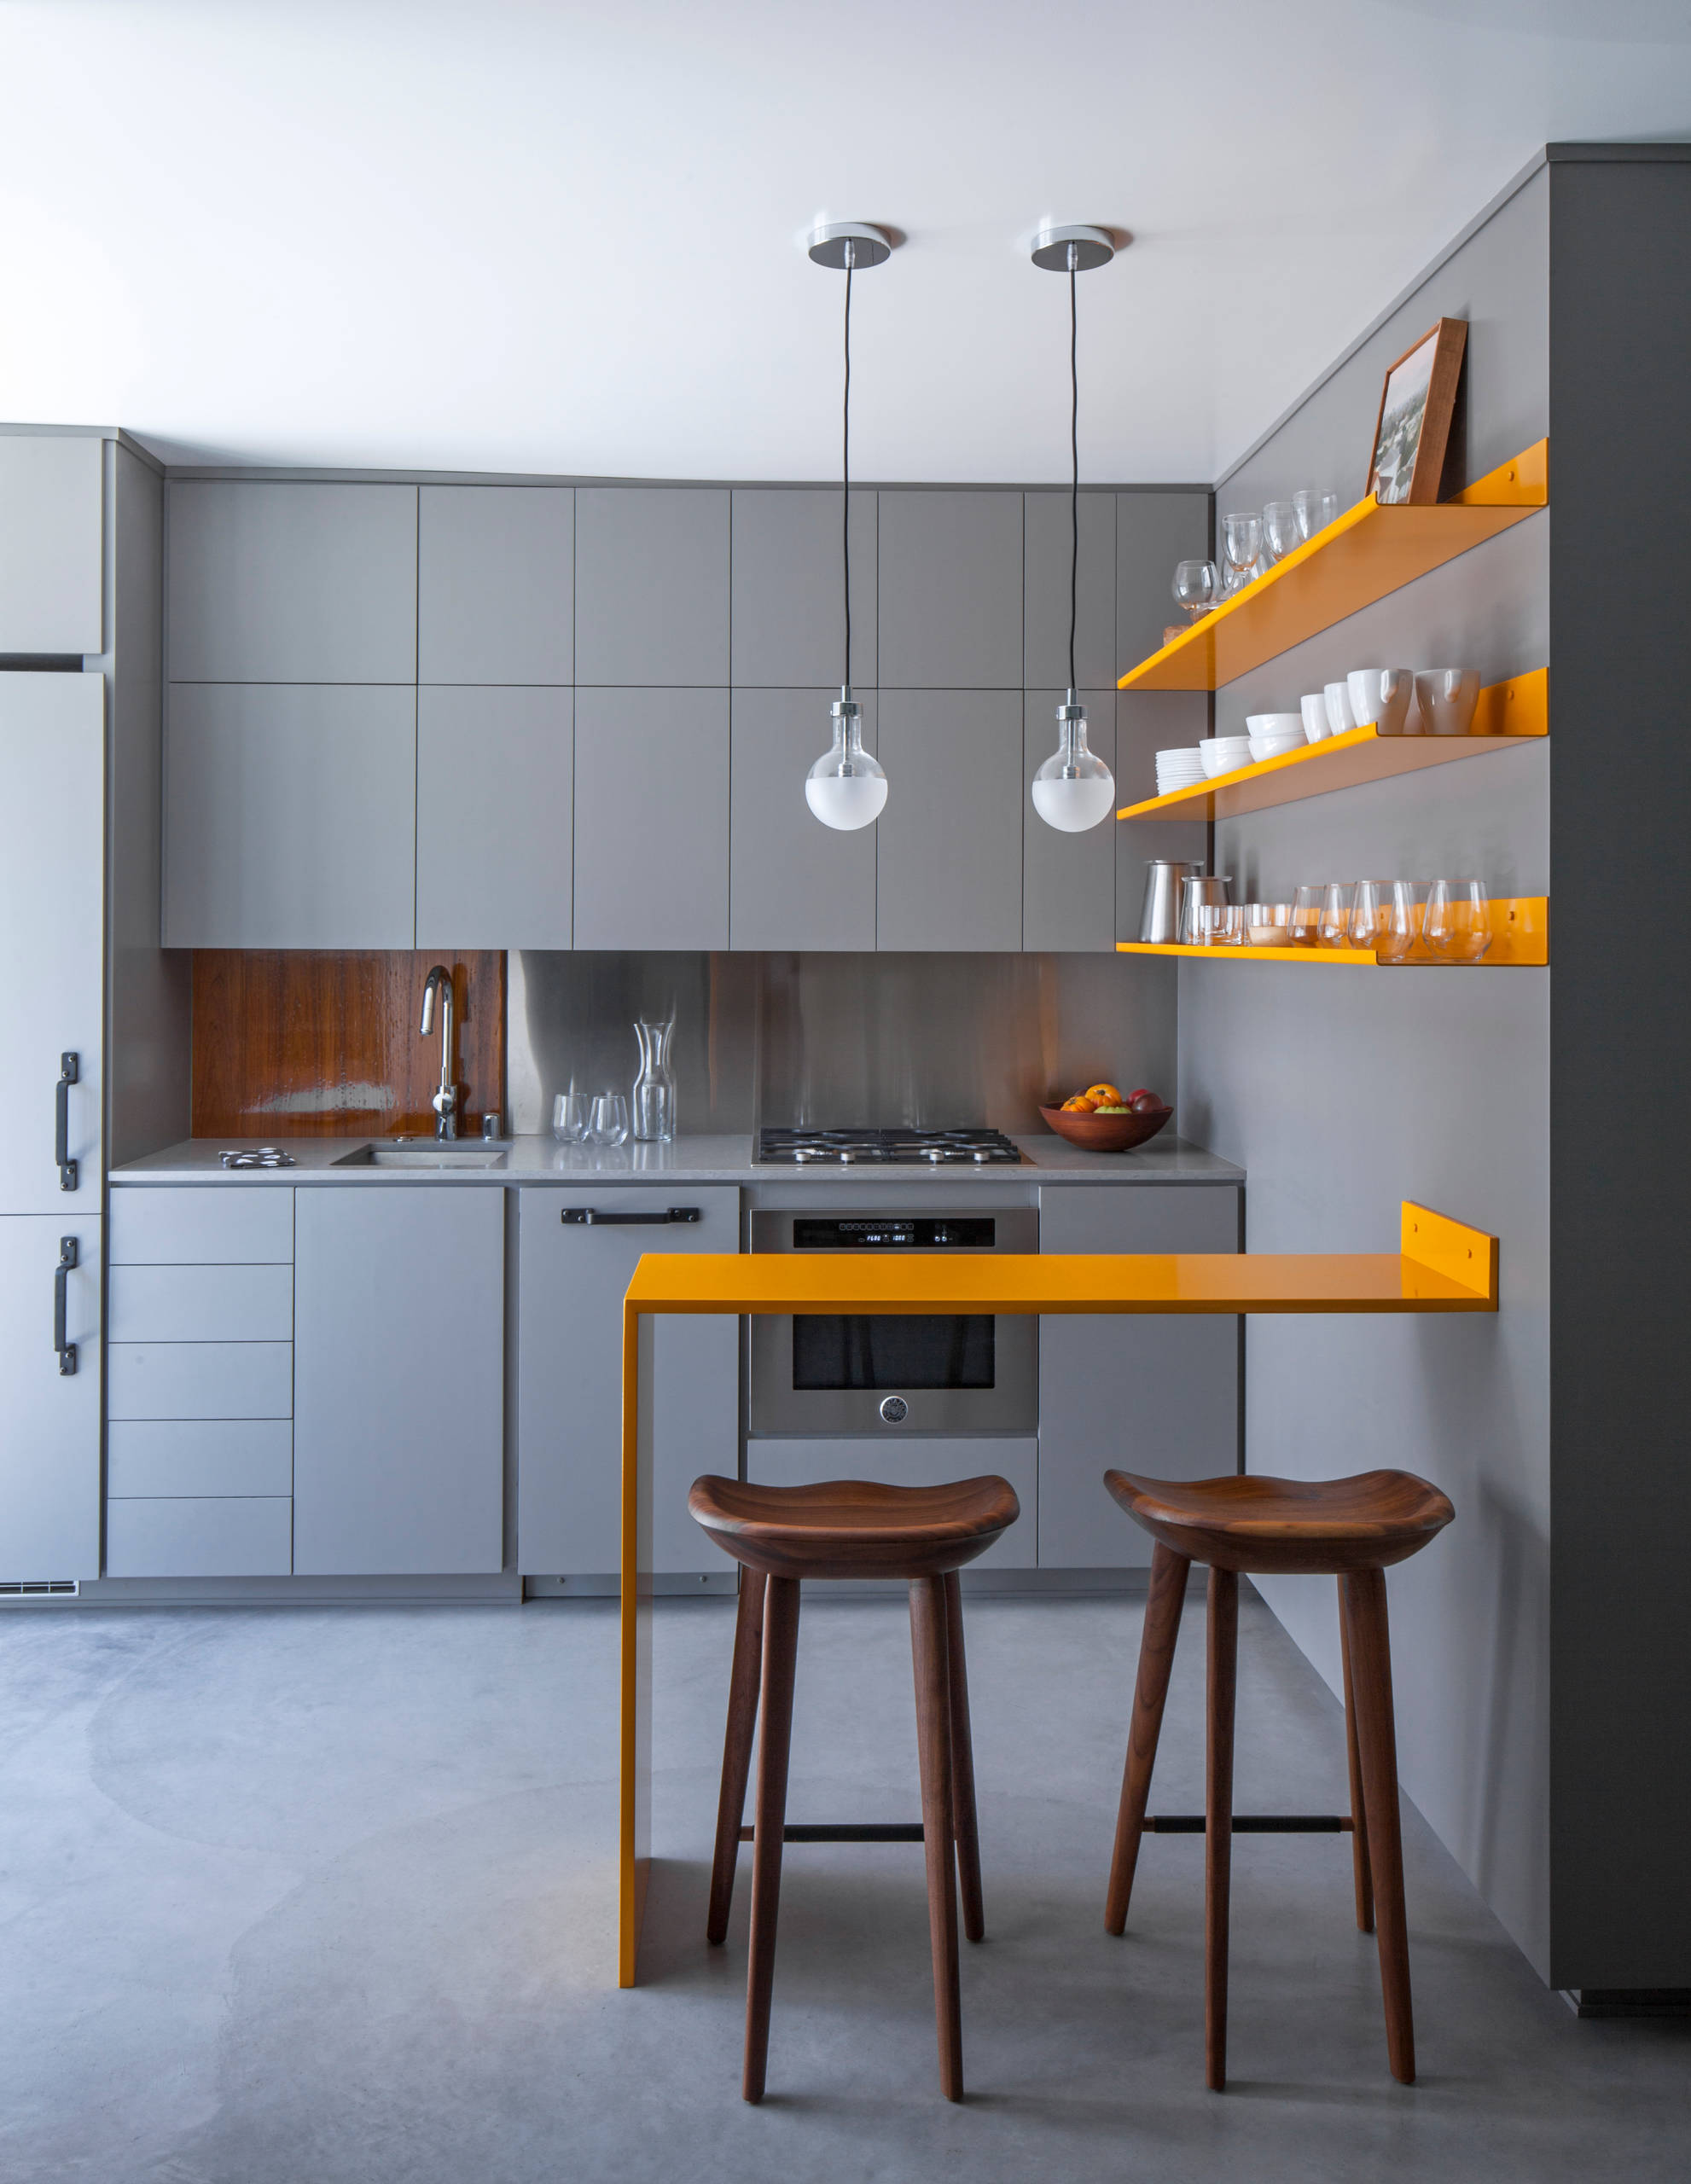 75 Beautiful Small Single Wall Kitchen Pictures Ideas January 2021 Houzz